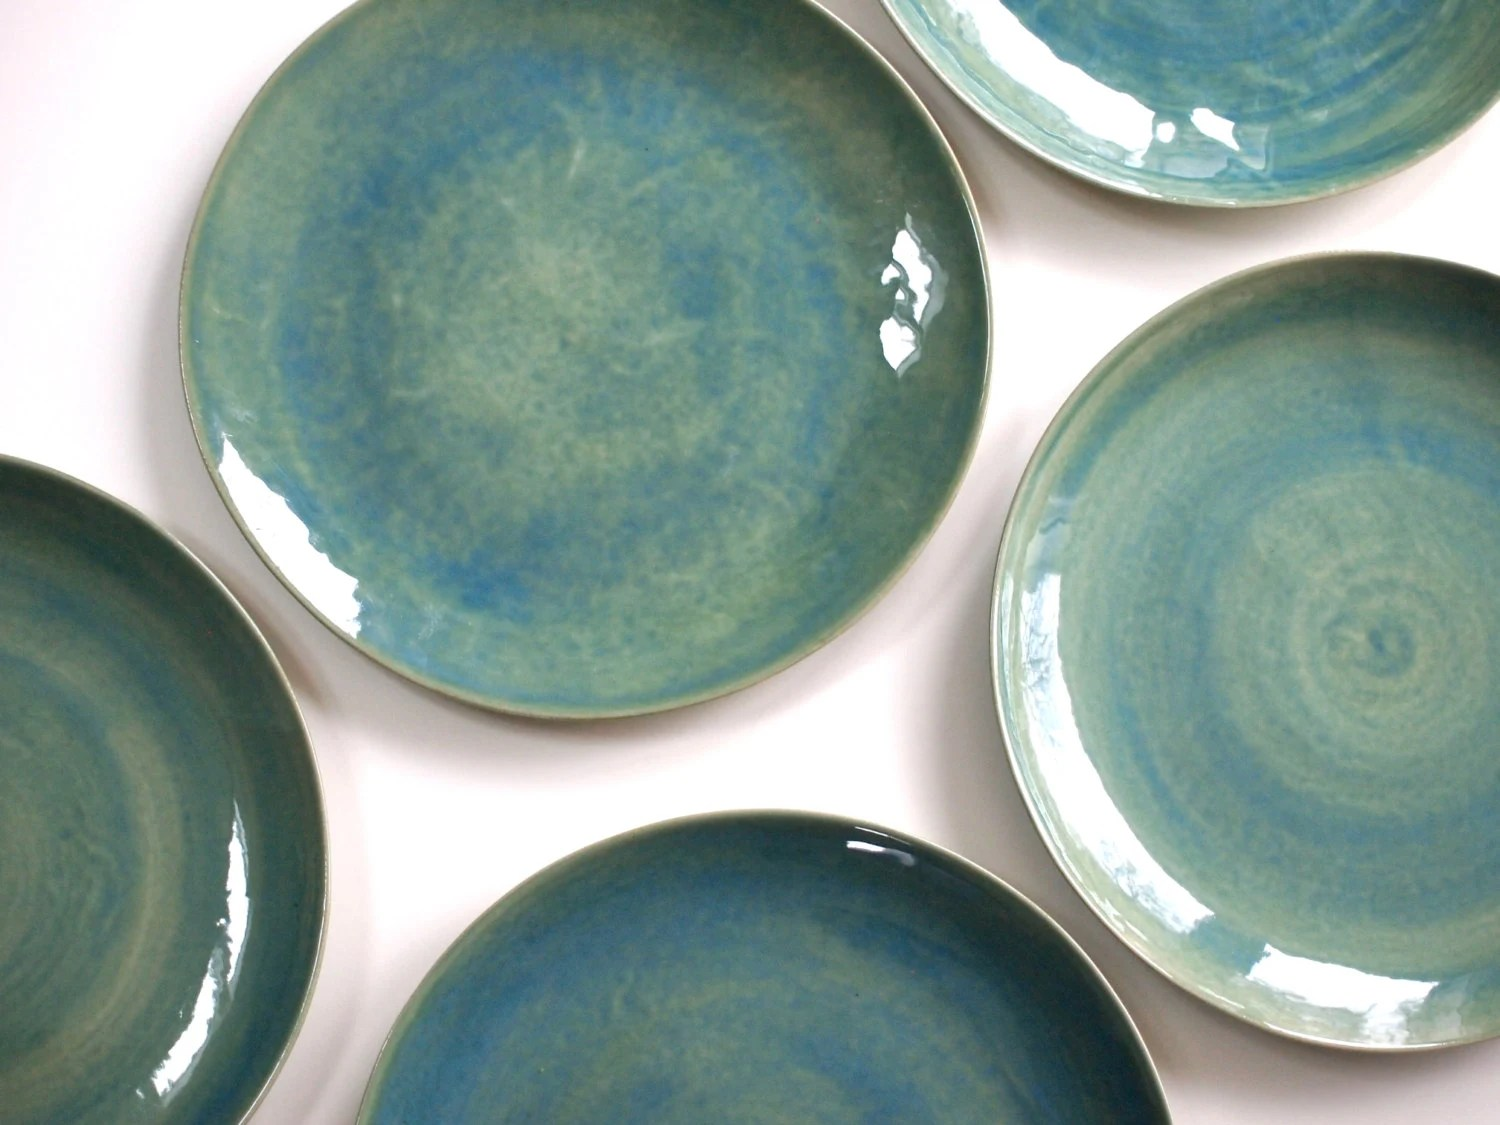 Geschirr Keramik Stoneware Plates Dinner Set Glazed In Green Ceramic Plate